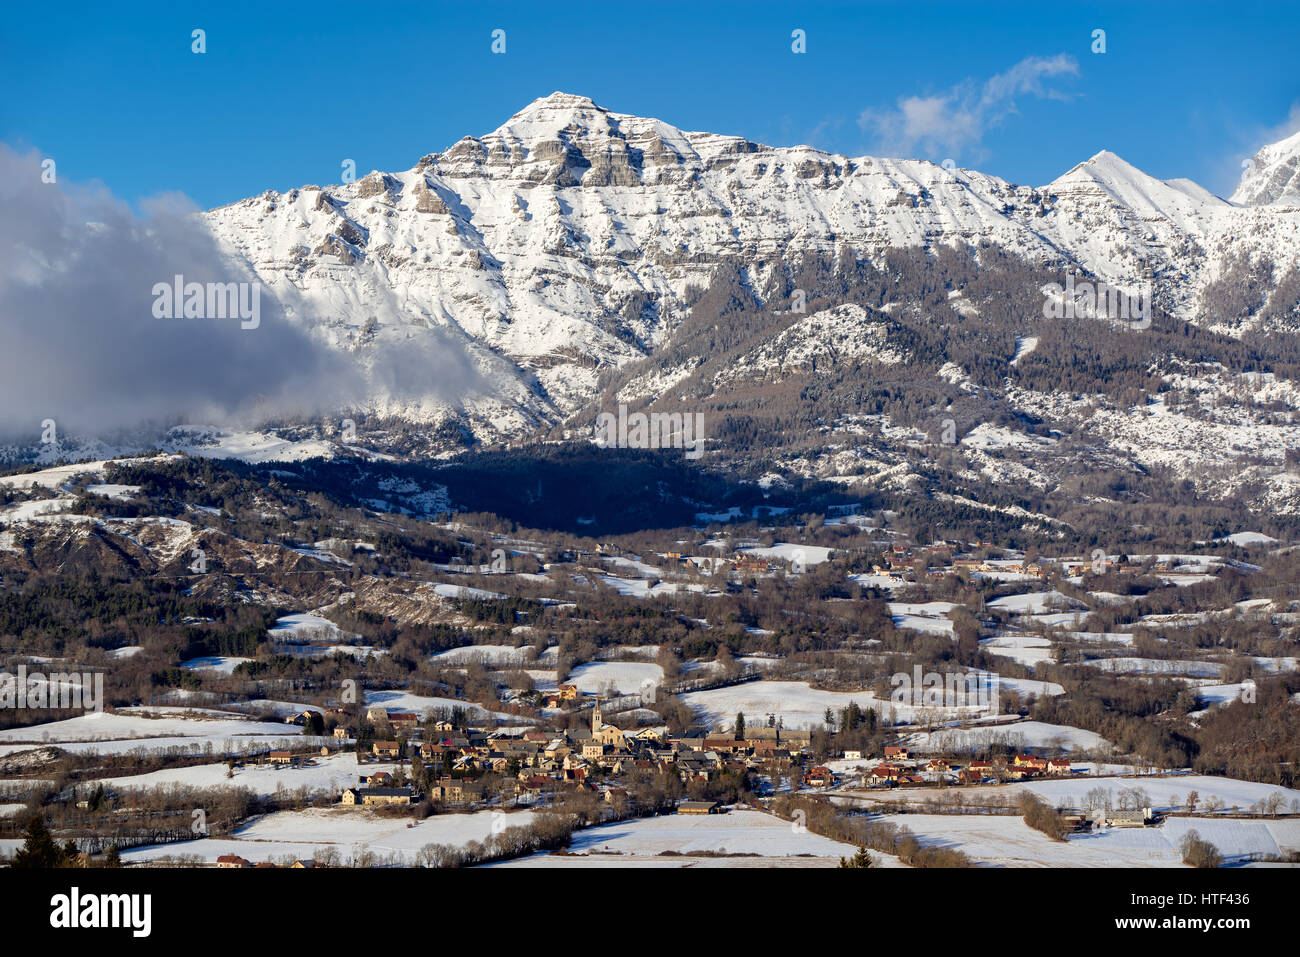 The village of Saint-Julien-en-Champsaur and the Queyrel Peak mountain in winter. Hautes Alpes, Southern French - Stock Image